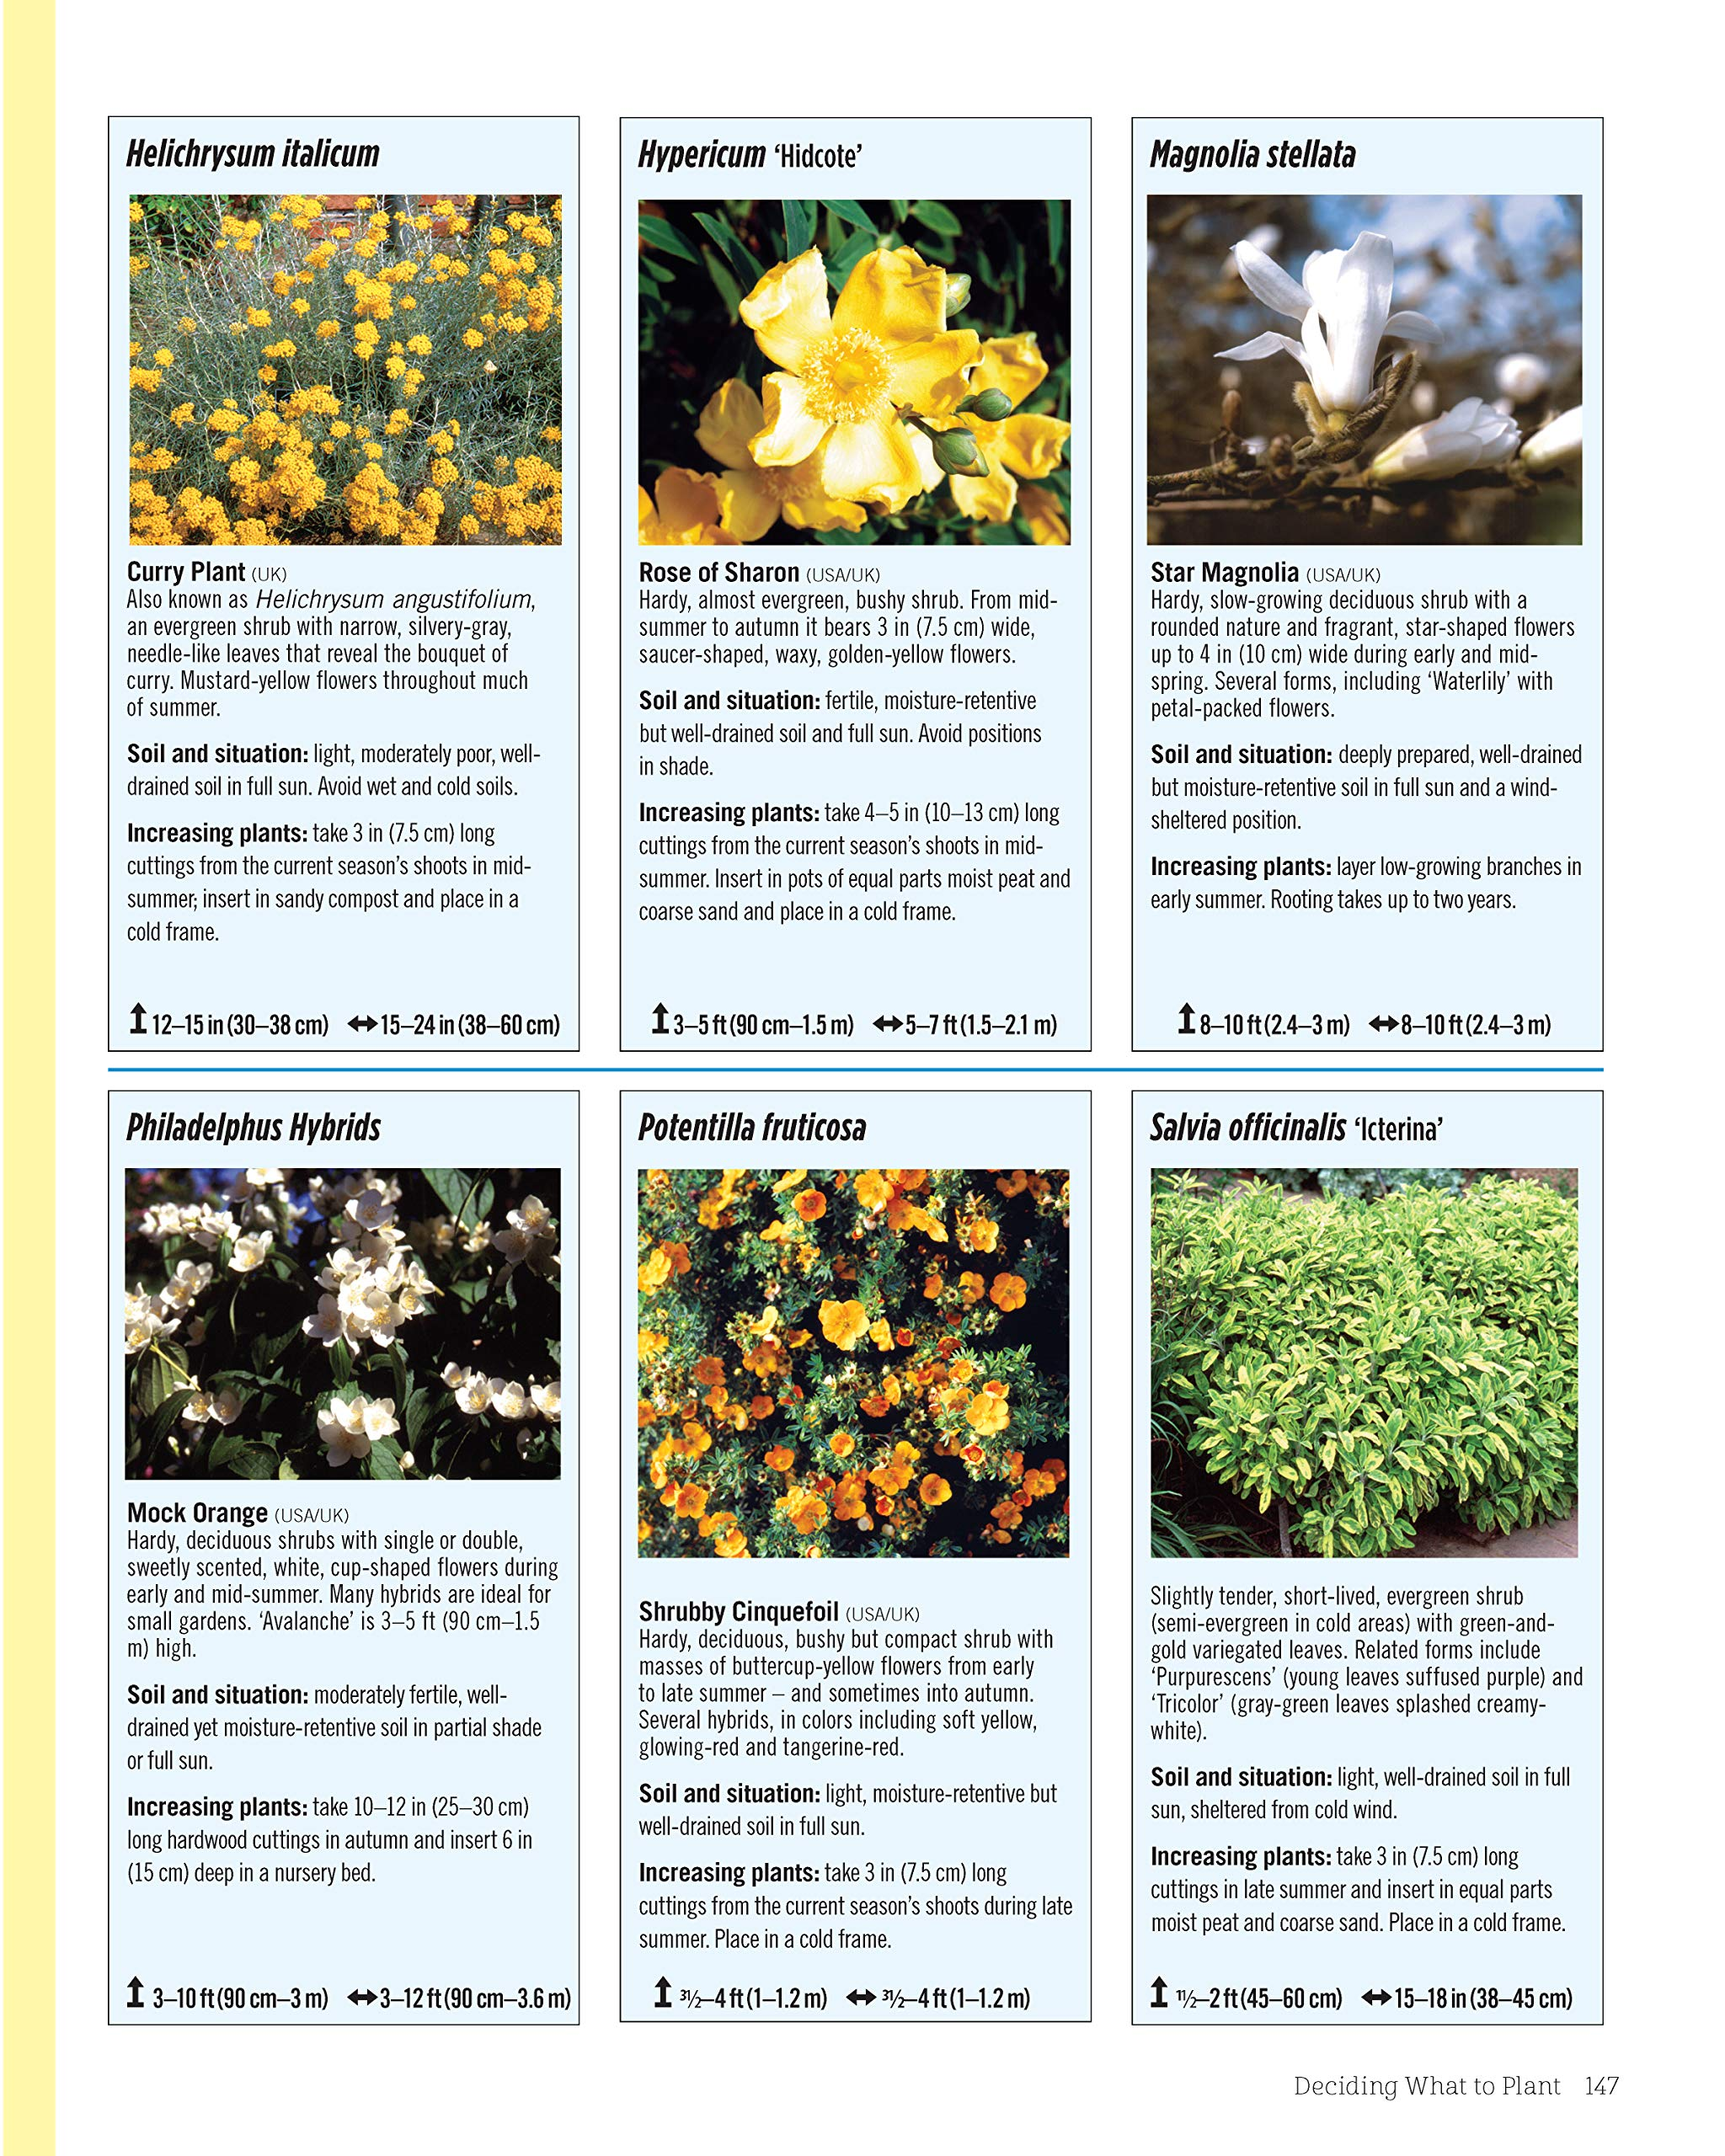 The Abundant Flower Gardener: Design and Grow a Fabulous Flower and Vegetable Garden: Amazon.es: Squire, David, Bridgewater, Alan: Libros en idiomas extranjeros